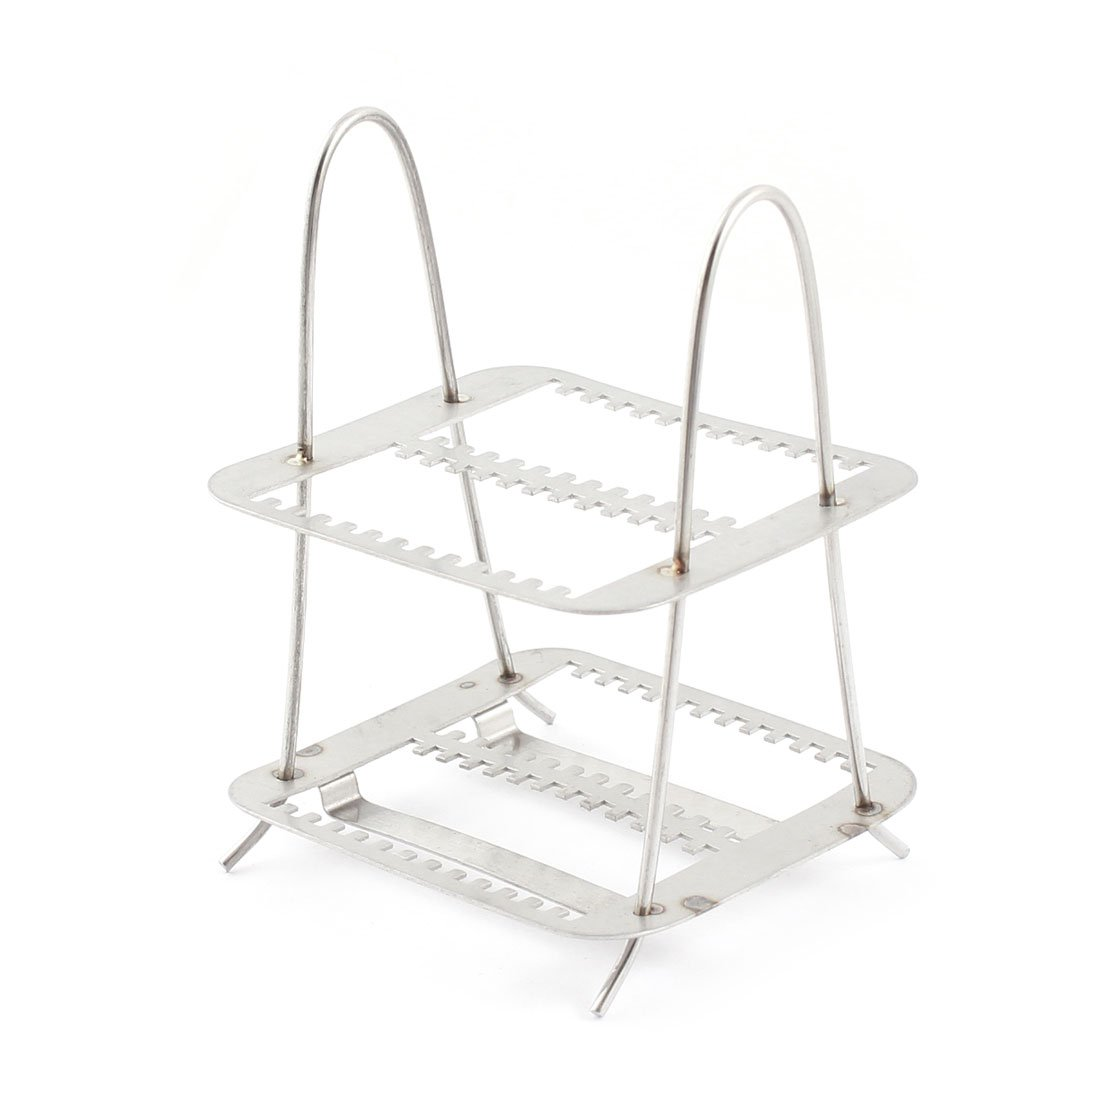 Lab Spare Parts Microbiology Stainless Steel Staining Rack 26 Slots SourcingMap a14091000ux0461